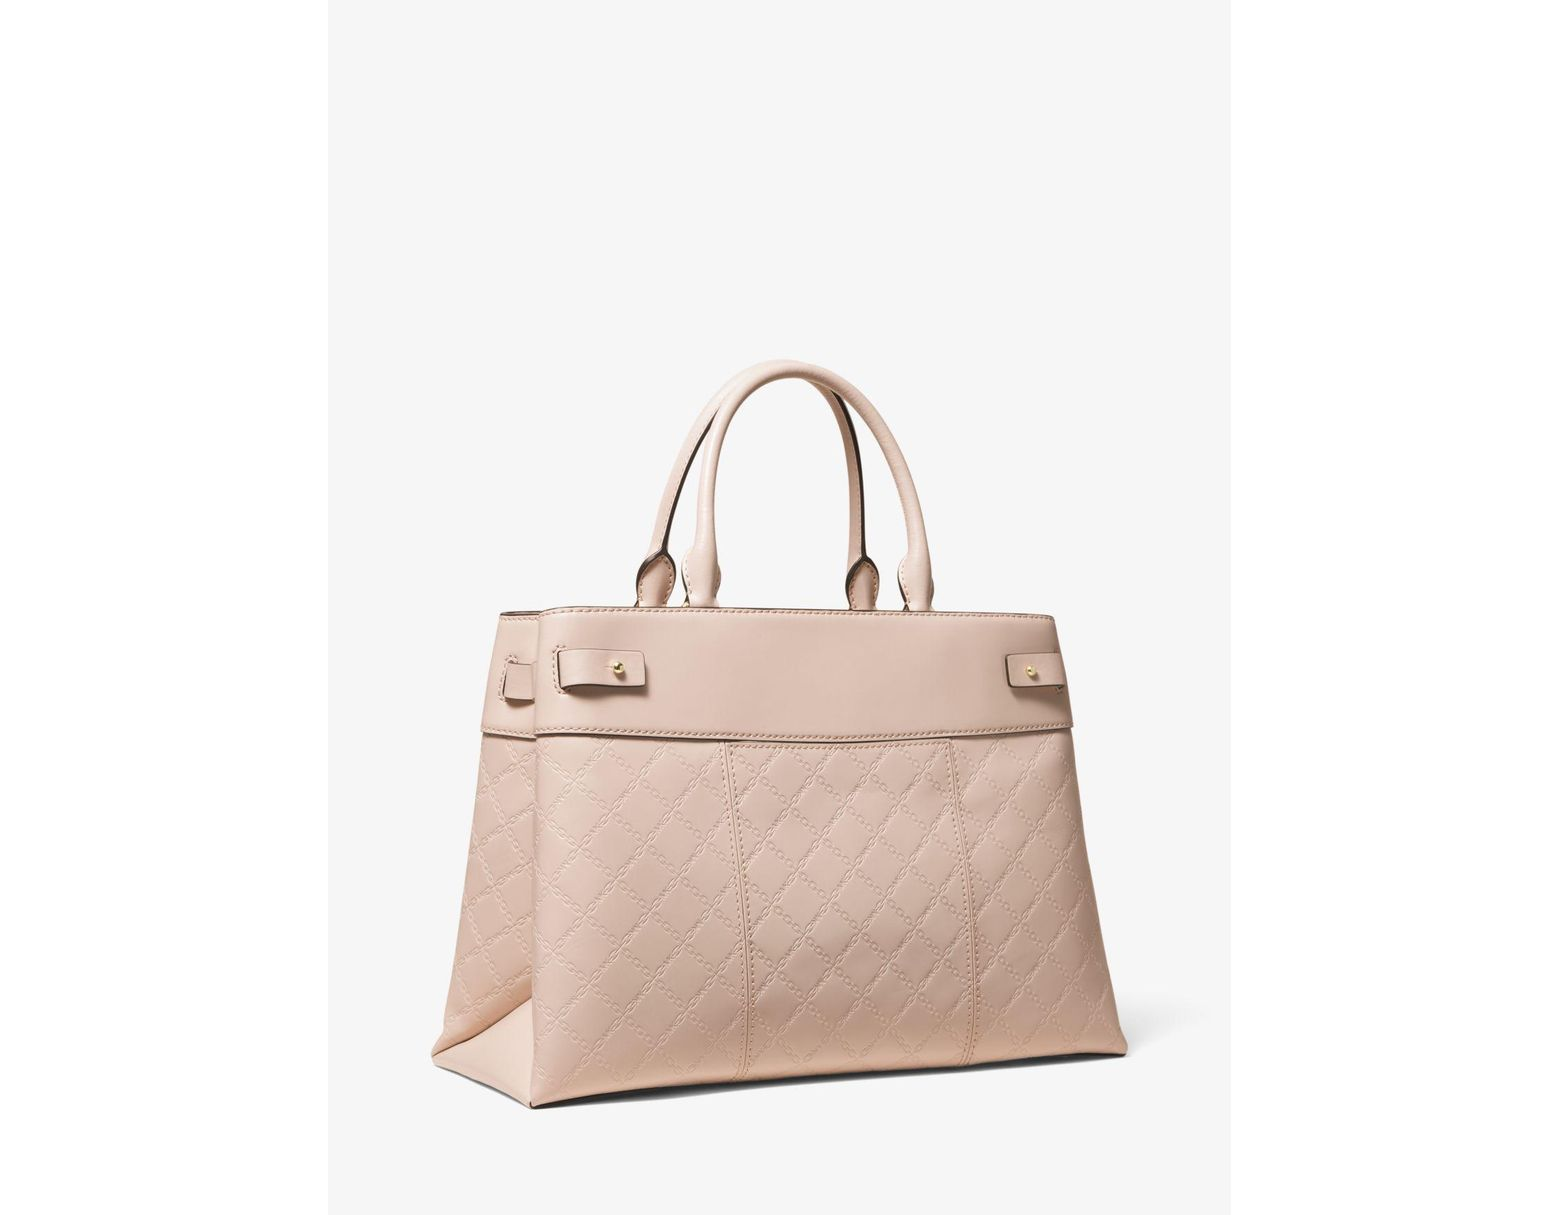 8d0e3ac15ca8 Michael Kors Gramercy Large Chain-embossed Leather Satchel in Pink - Save  55% - Lyst